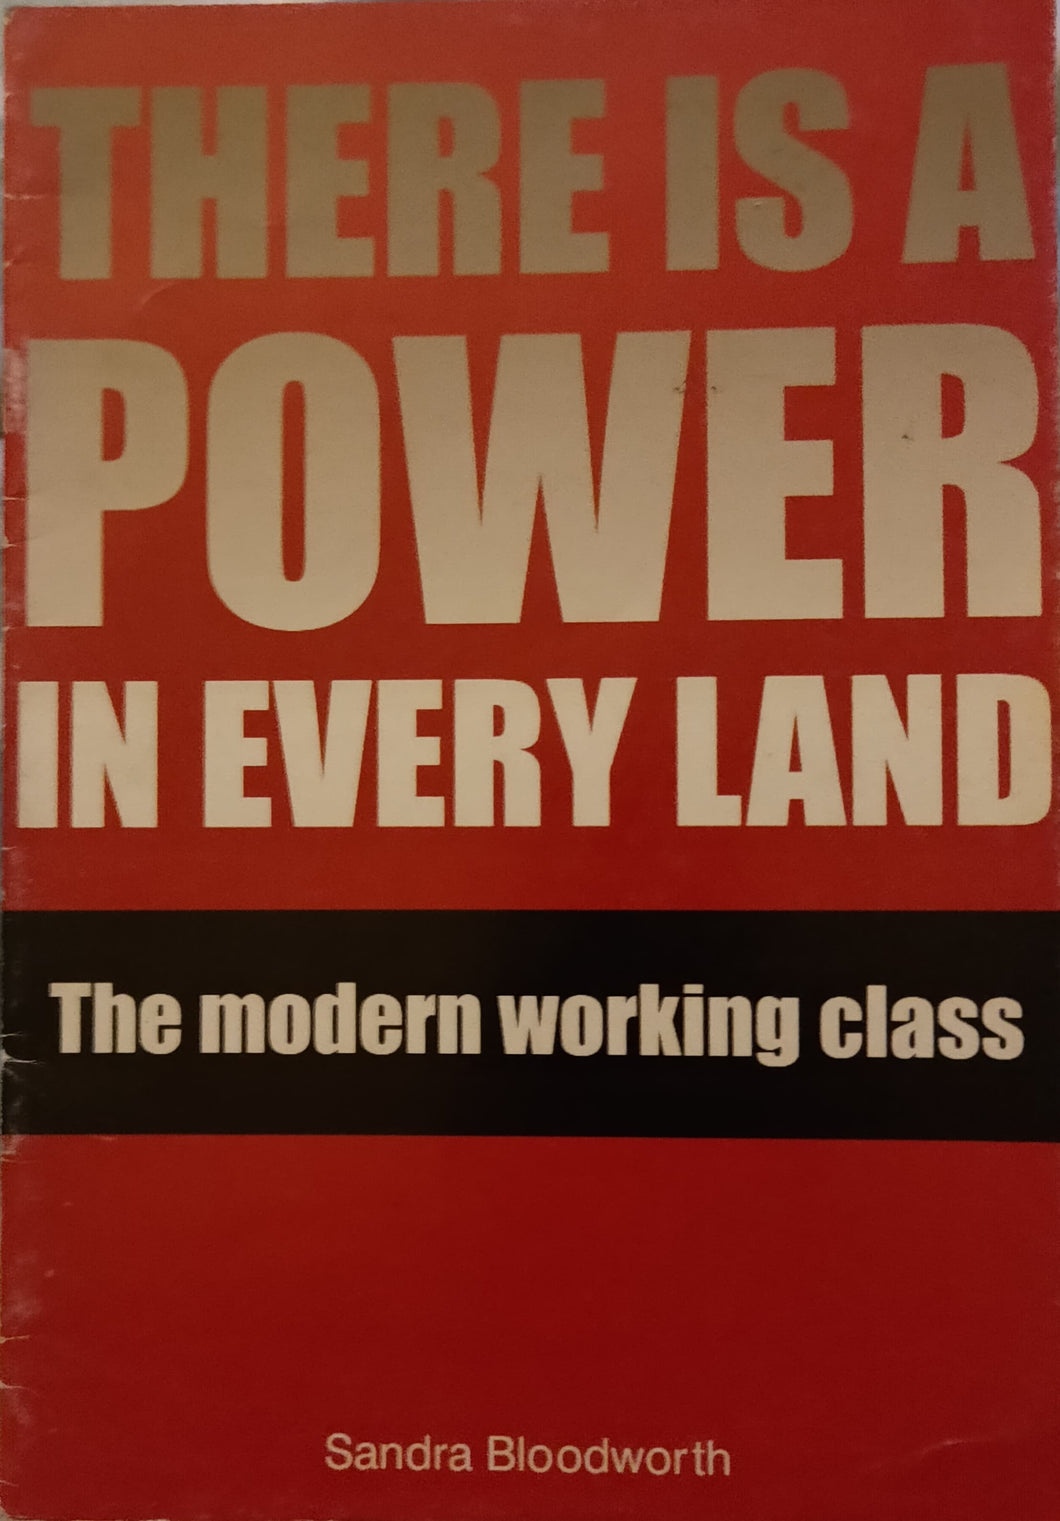 'There is a Power in Every Land': The modern working class